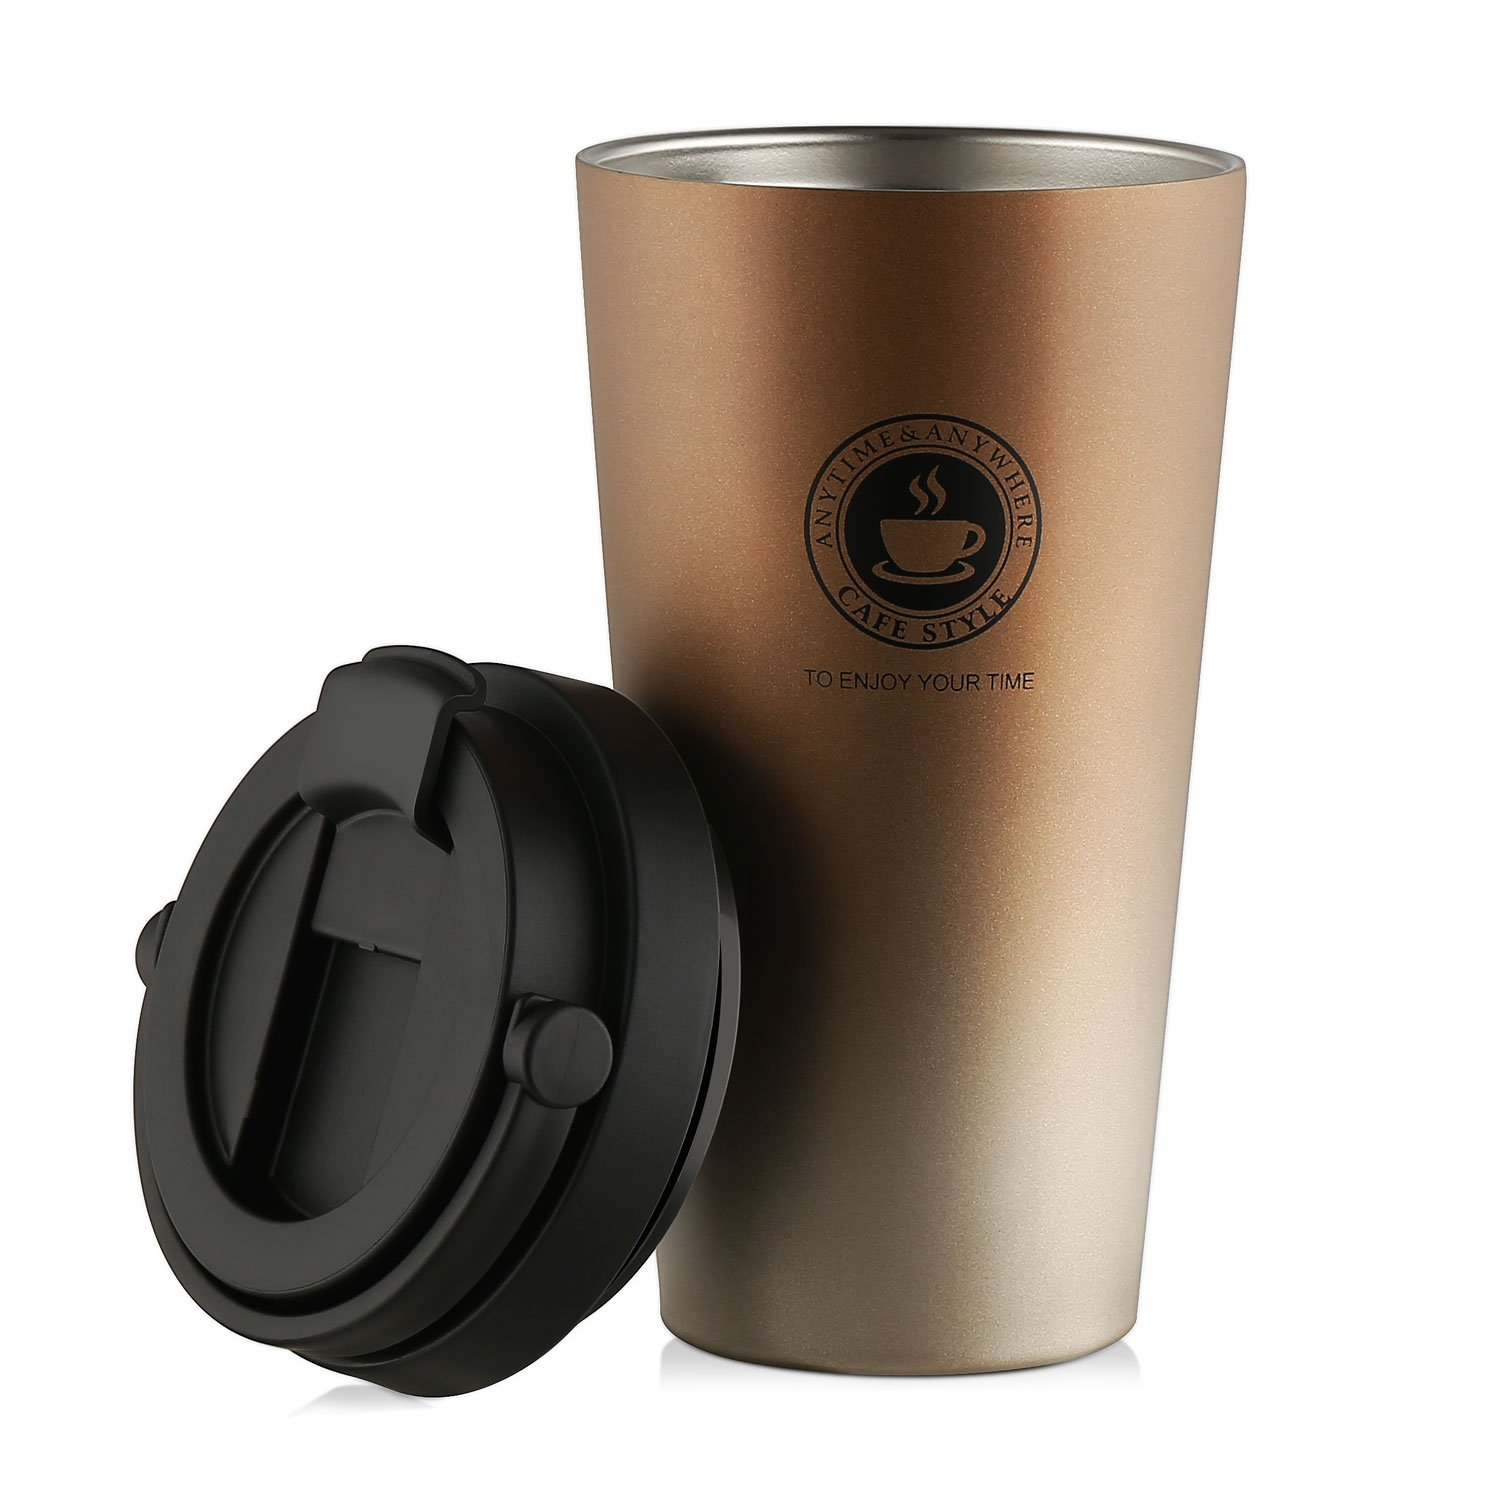 Home / portable Stainless Steel Coffee Mug Insulation / cold Beer Cup acuum Insulated Double-Walled 18/8 Stainless Steel Hydro Travel Mug Coffee color 17OZ (500ml)